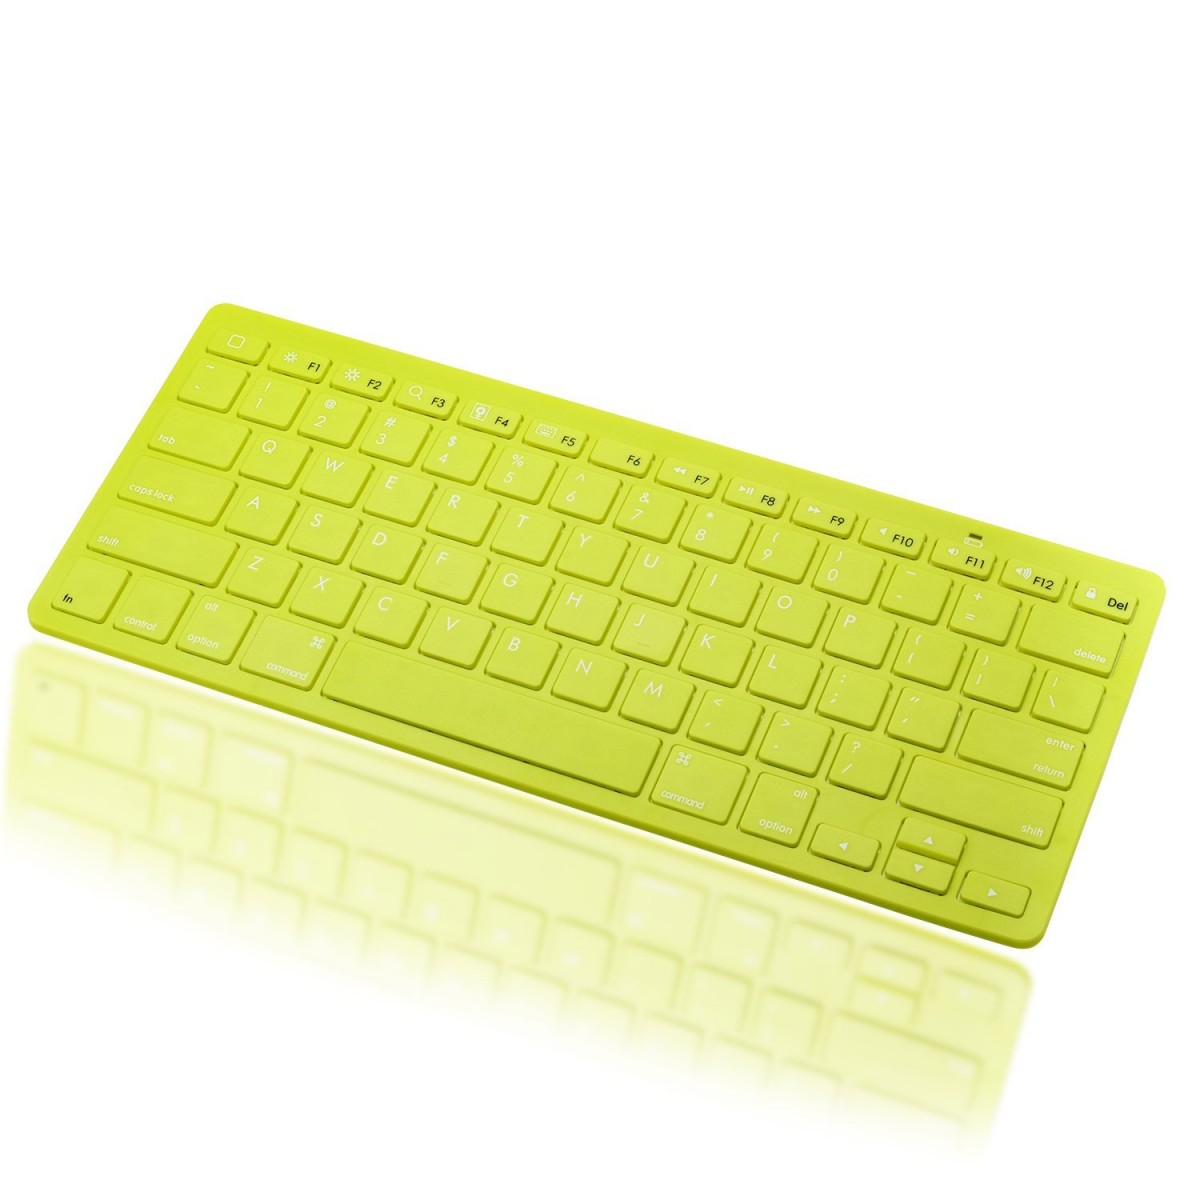 external keyboard for samsung galaxy s5